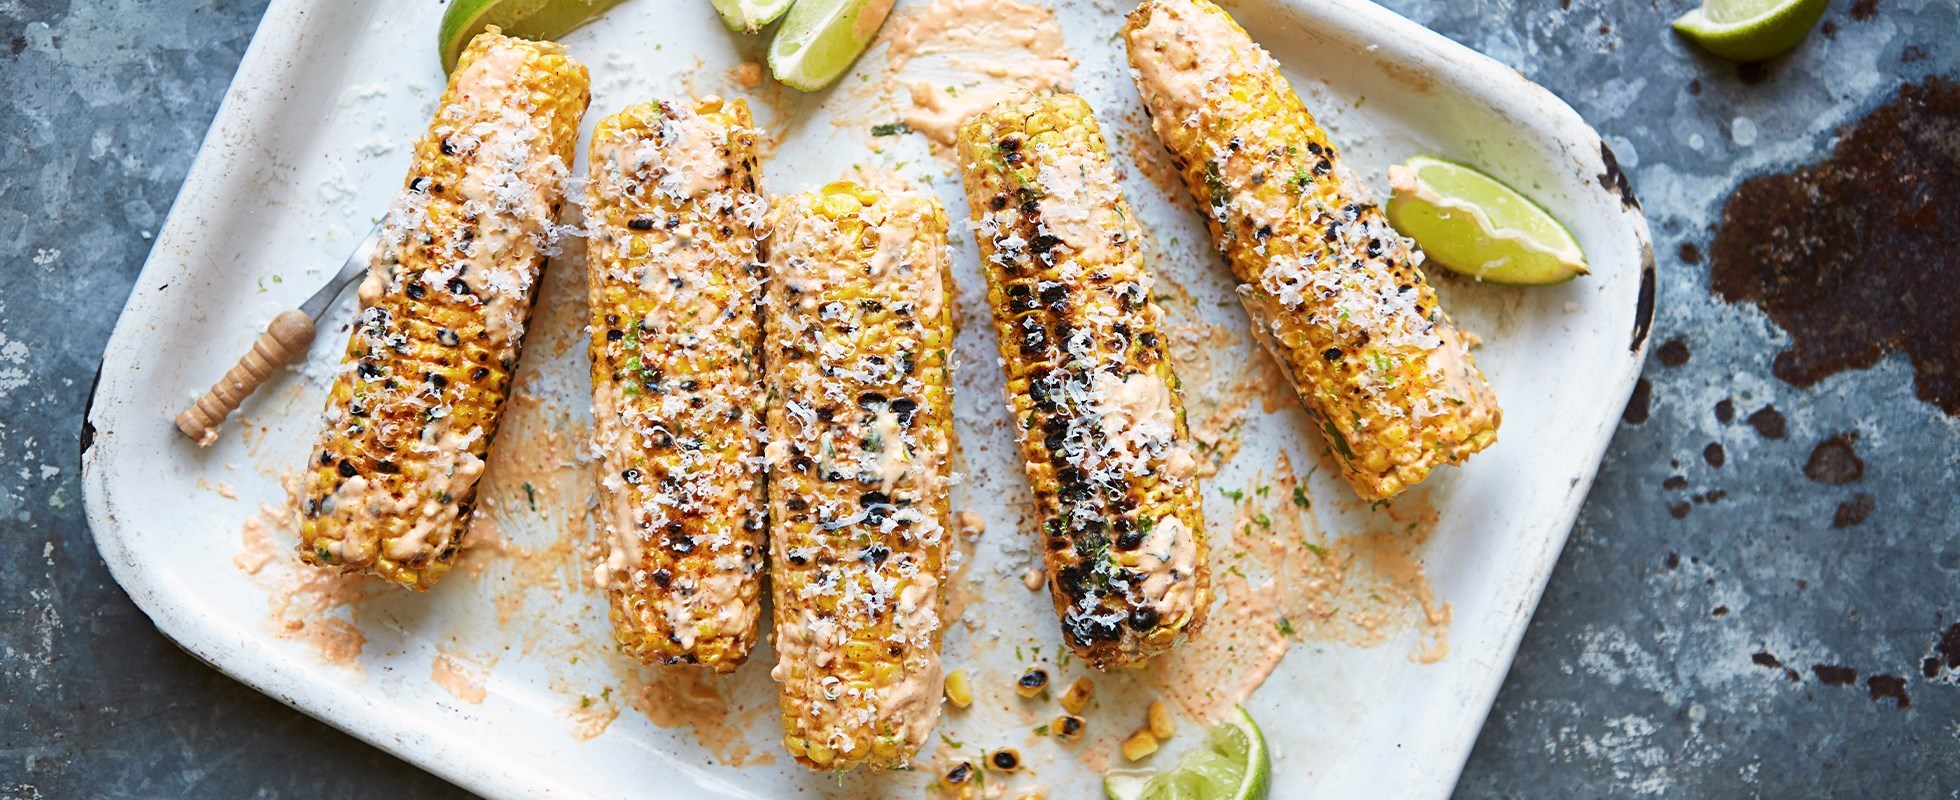 spicy corn on cob